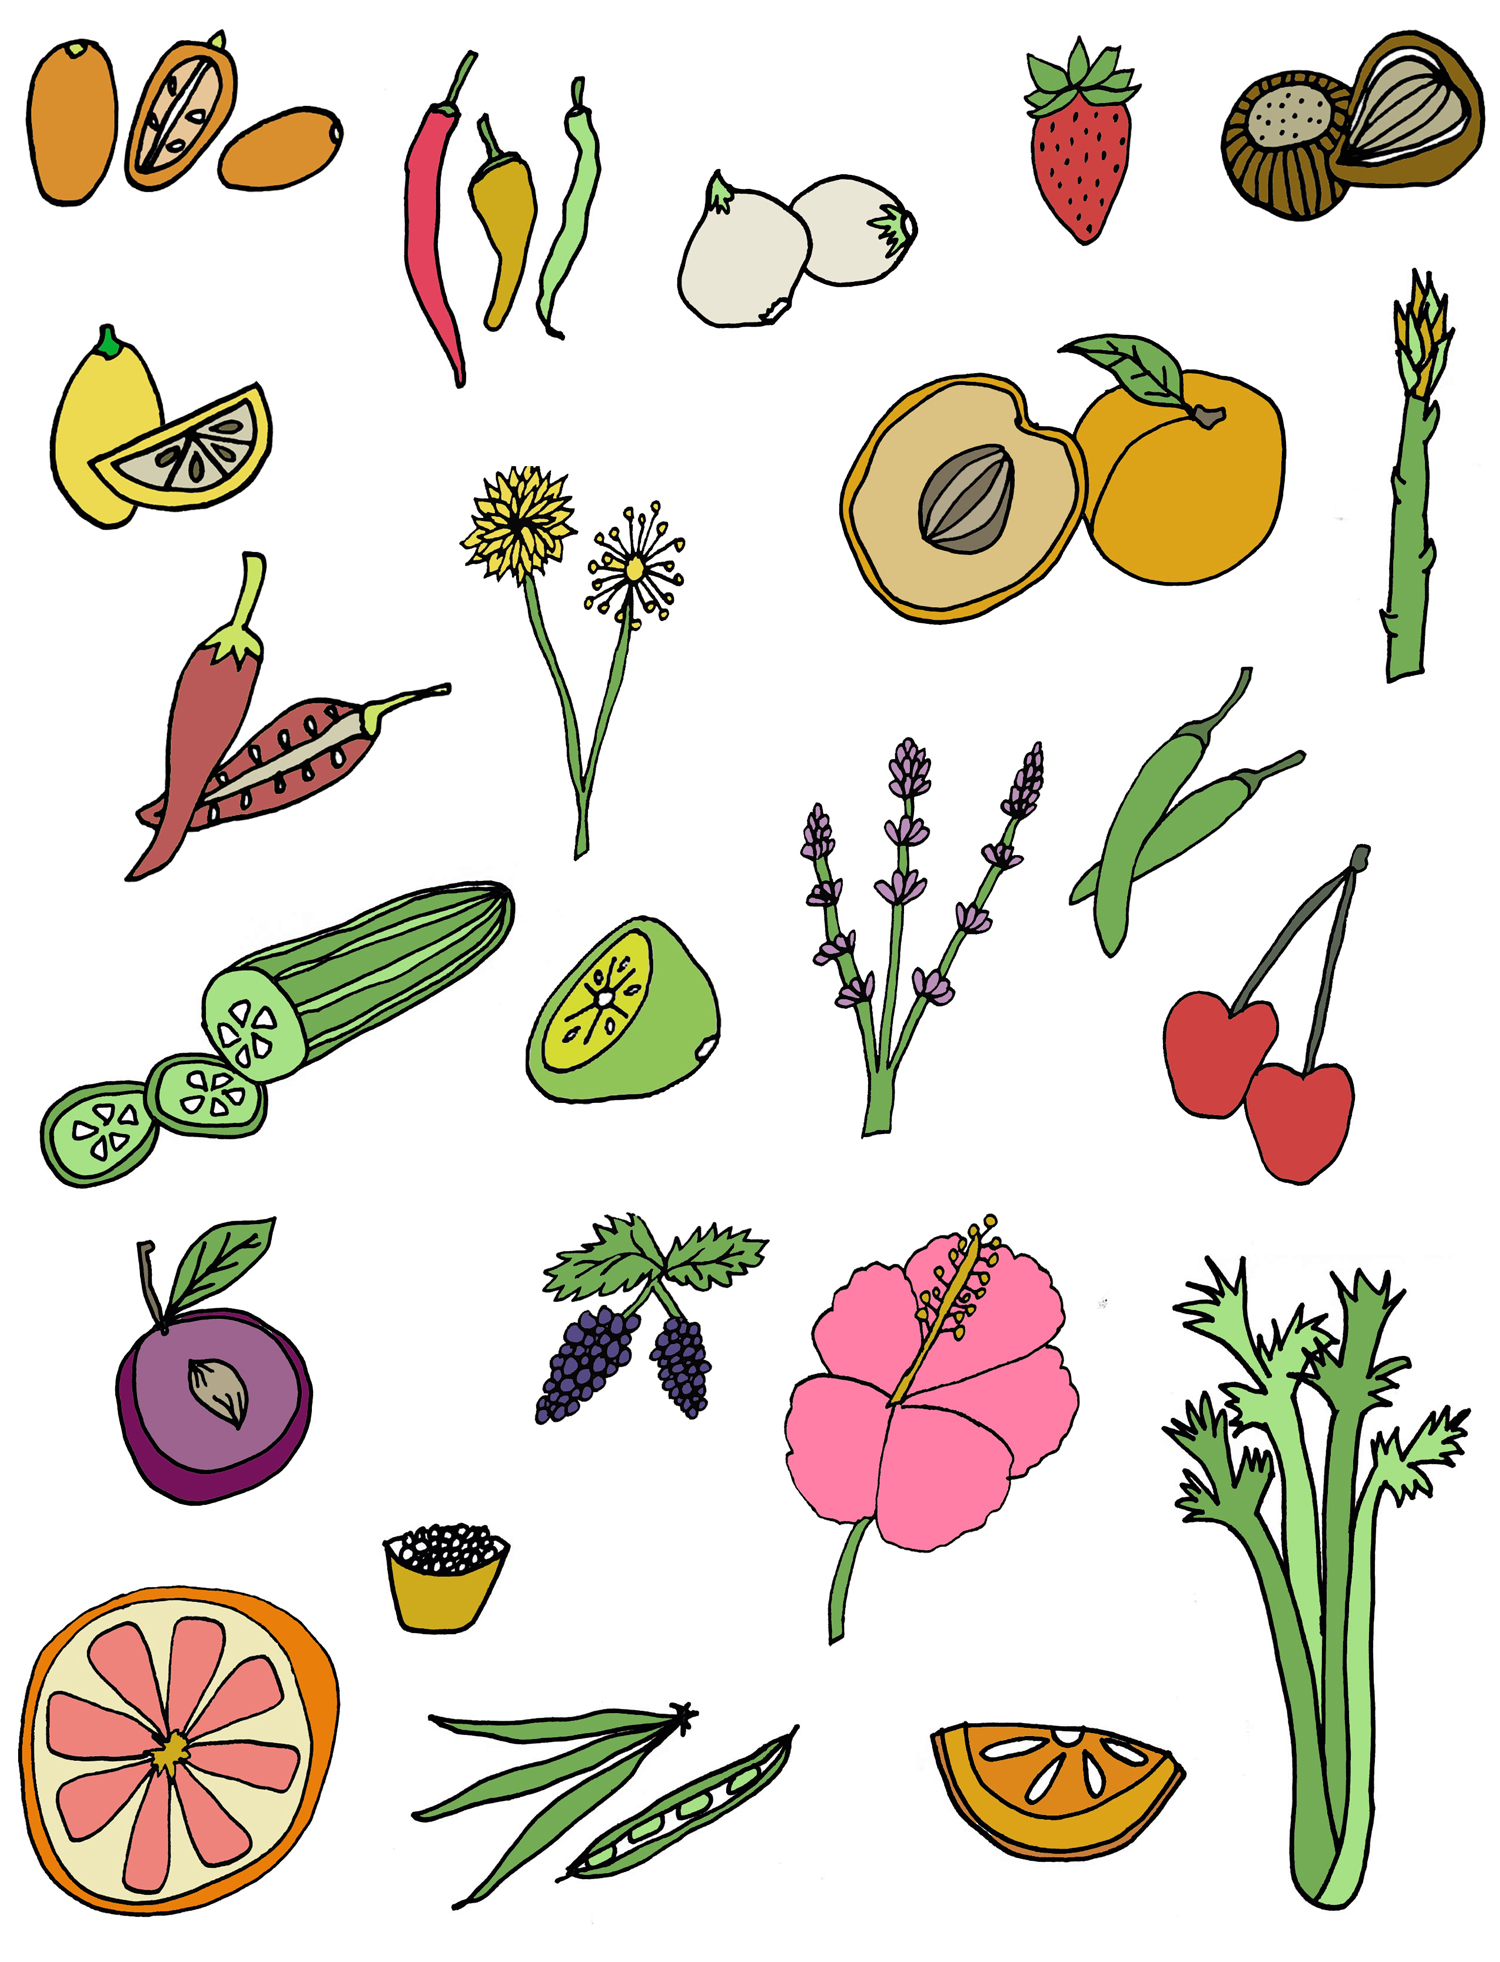 fruit vegetables drawing illustration nicole stevenson studio.jpg